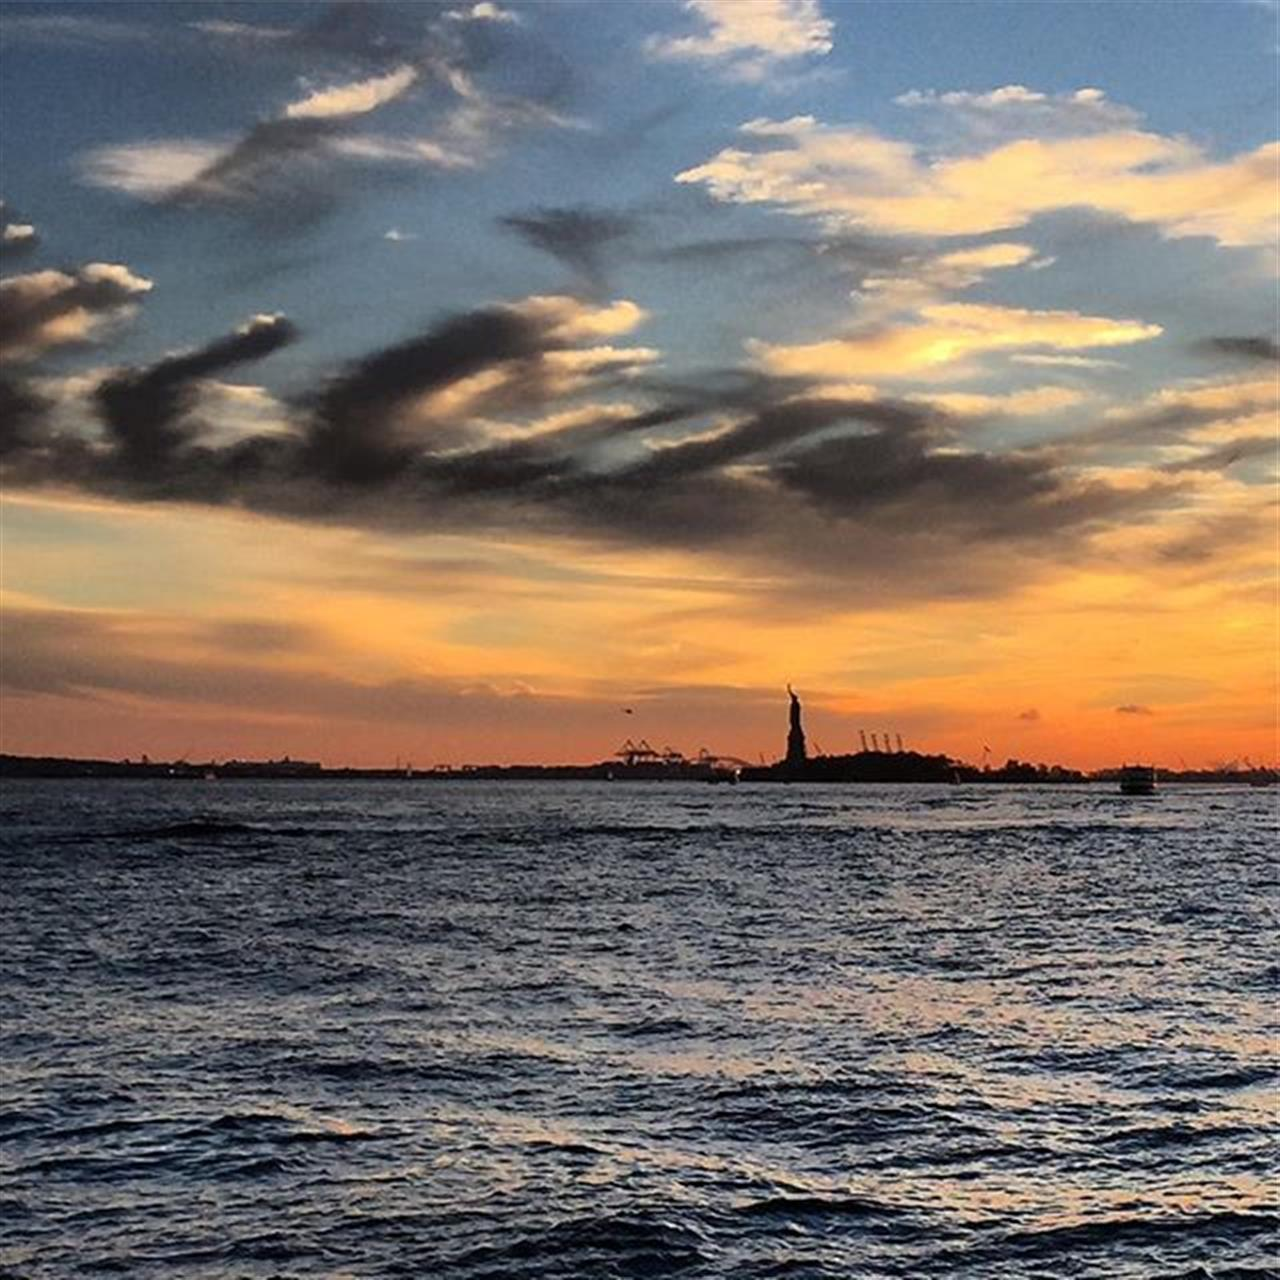 Statue of Liberty #nyc #sunset #leadingrelocal